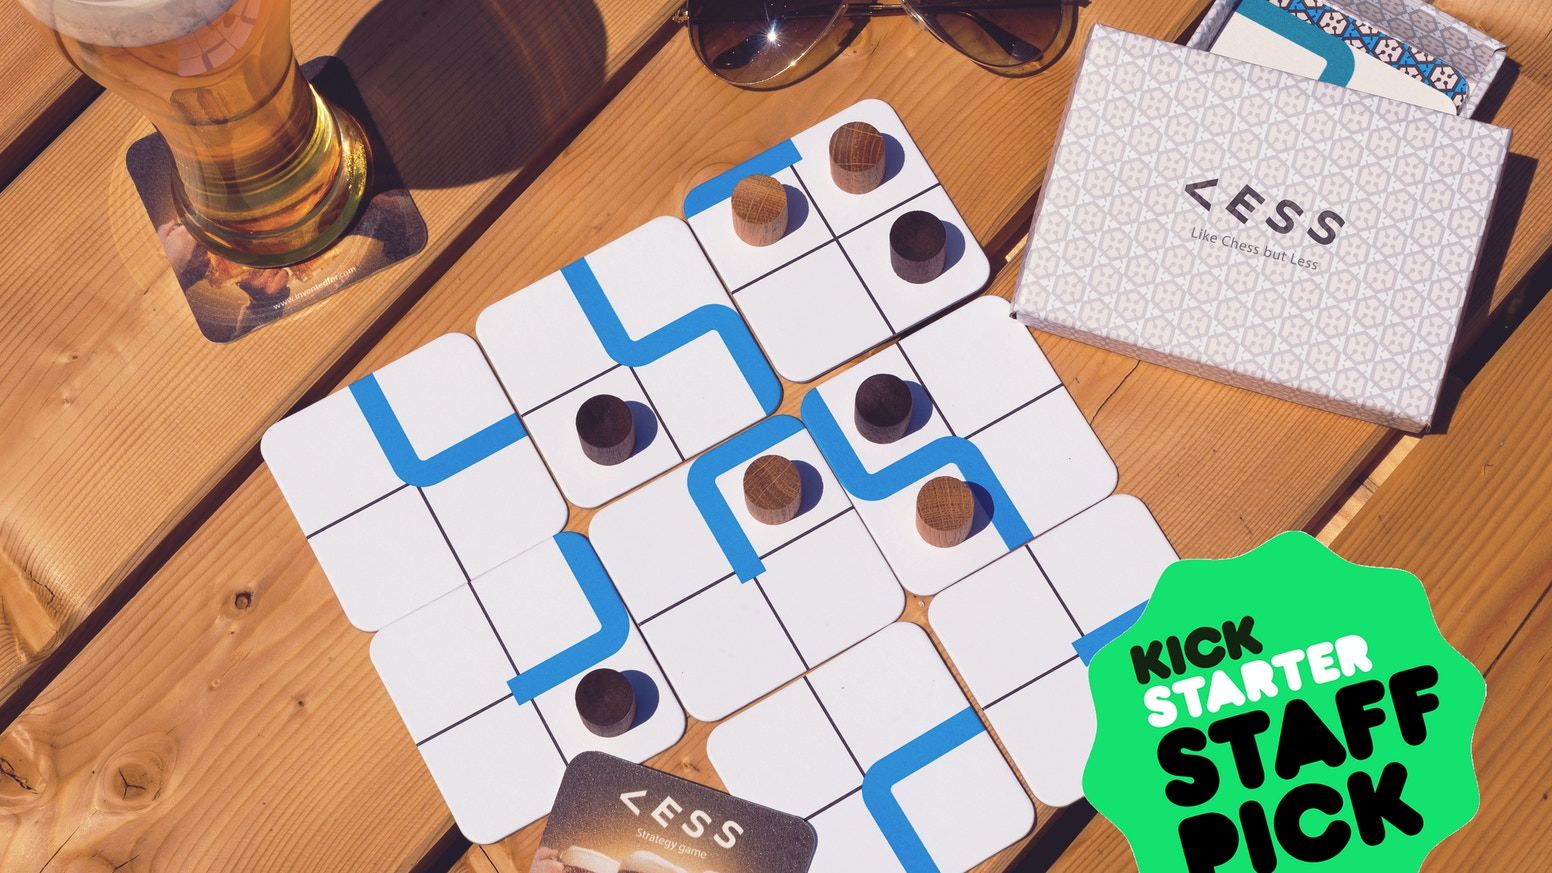 A simple strategy board game for two or four players. It's easy to learn and fun to play.